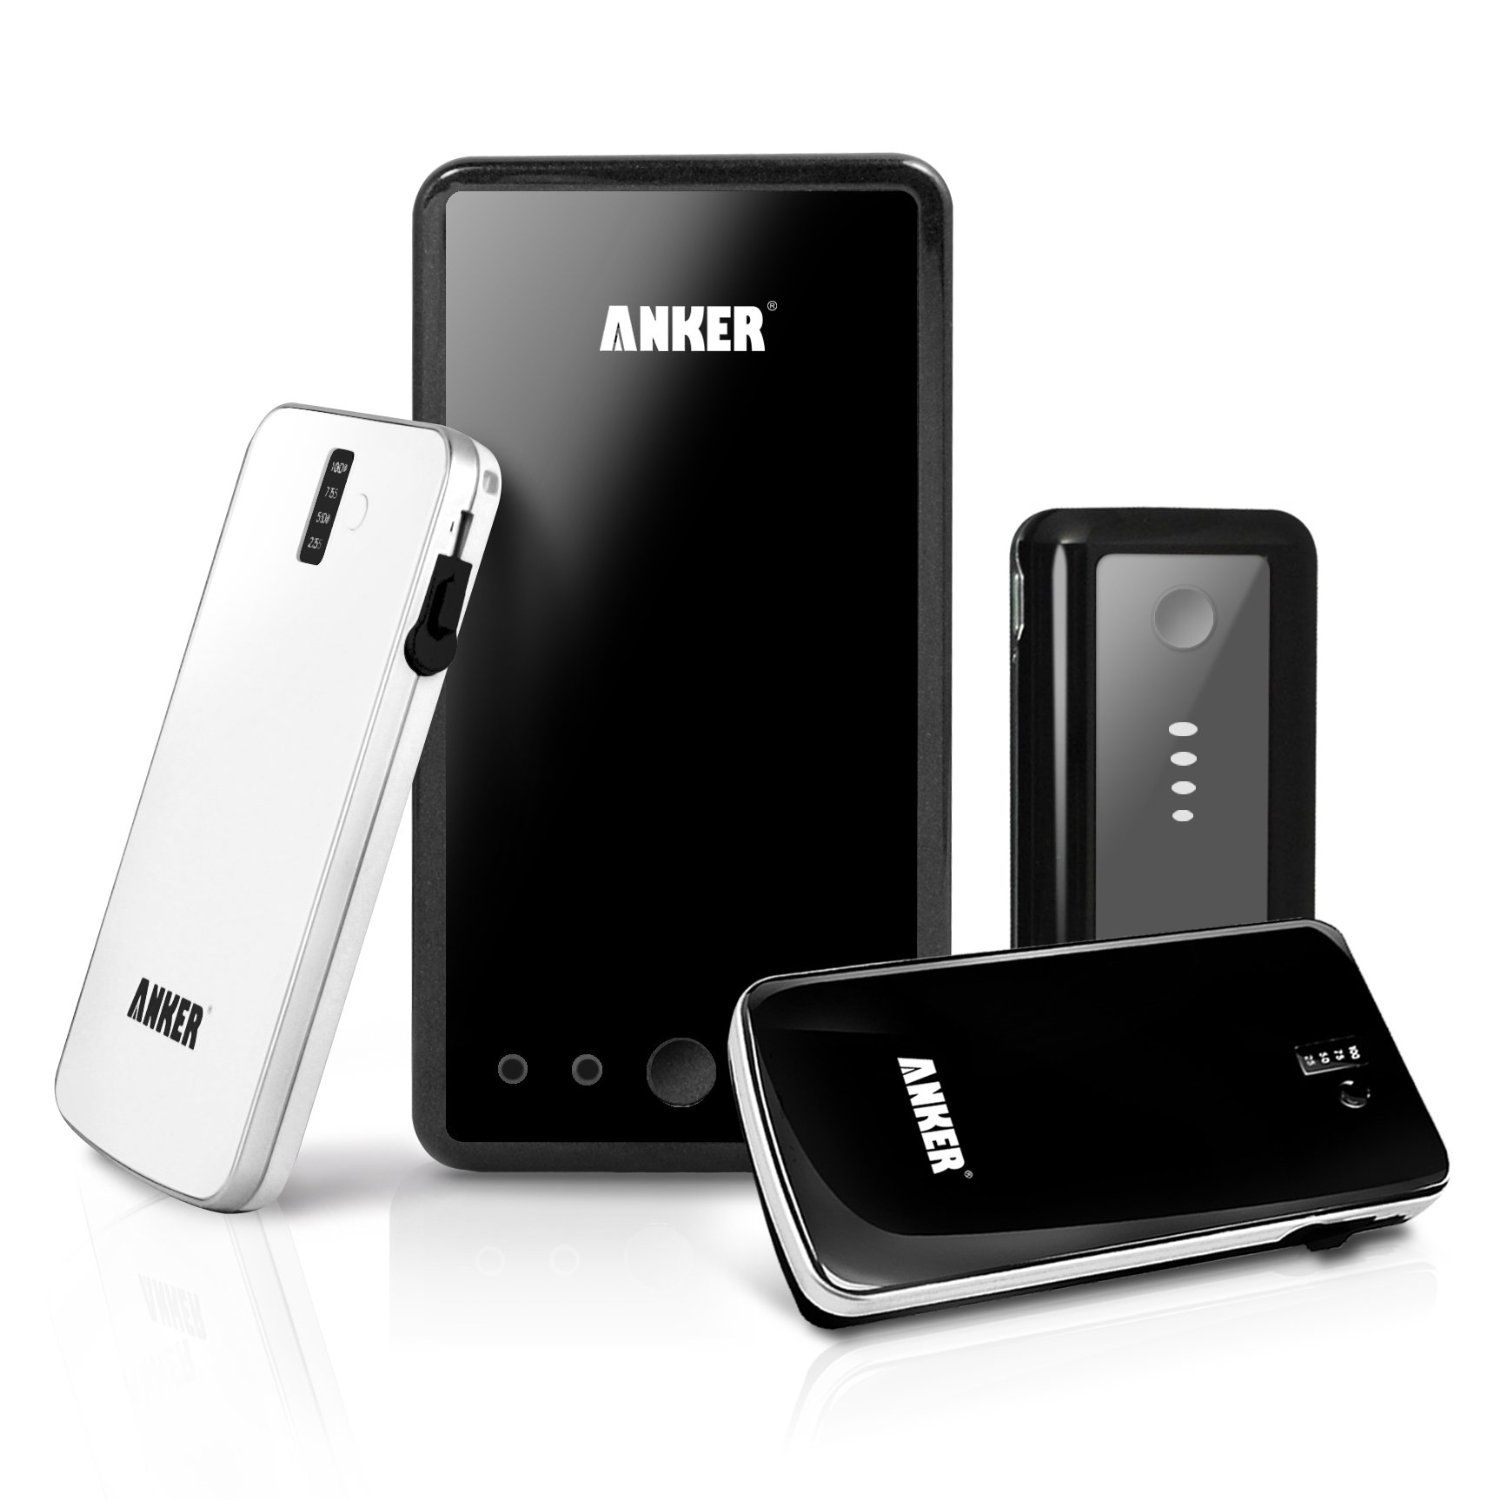 Anker® Astro Christmas Family Gift Holiday Pack 4 External Batteries for iPhone, iPad, Android Phones; 1 Astro3E Black 10000mAh + 1 Astro Black 5600mAh + 1 Astro Slim White 3200mAh + 1 Astro Slim Black 3200mAh [Keep the Whole Family Powered Up]    http://www.amazon.com/gp/product/B009X8VELO?ie=UTF8=1789=B009X8VELO=xm2=rospridre-20